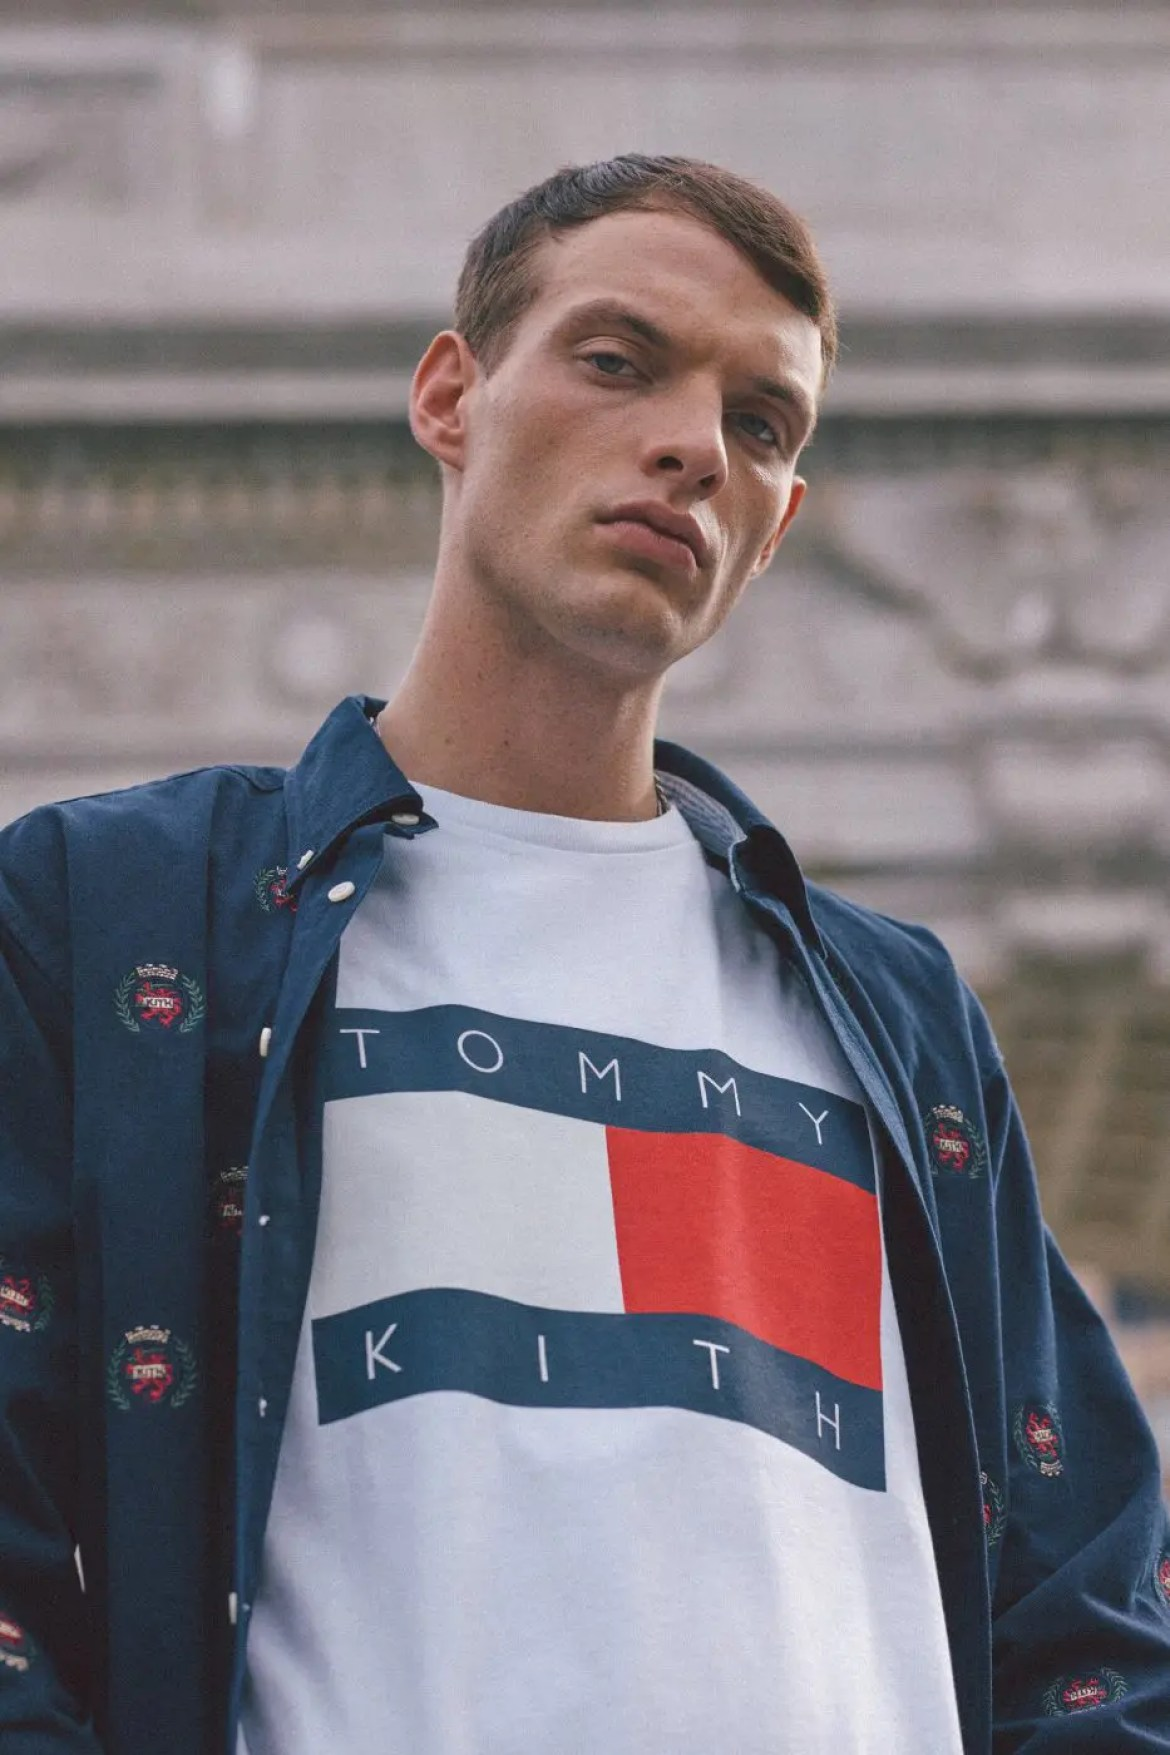 https_hypebeast.comimage201808ronnie-fieg-previews-tommy-hilfiger-kith-collaboration-1